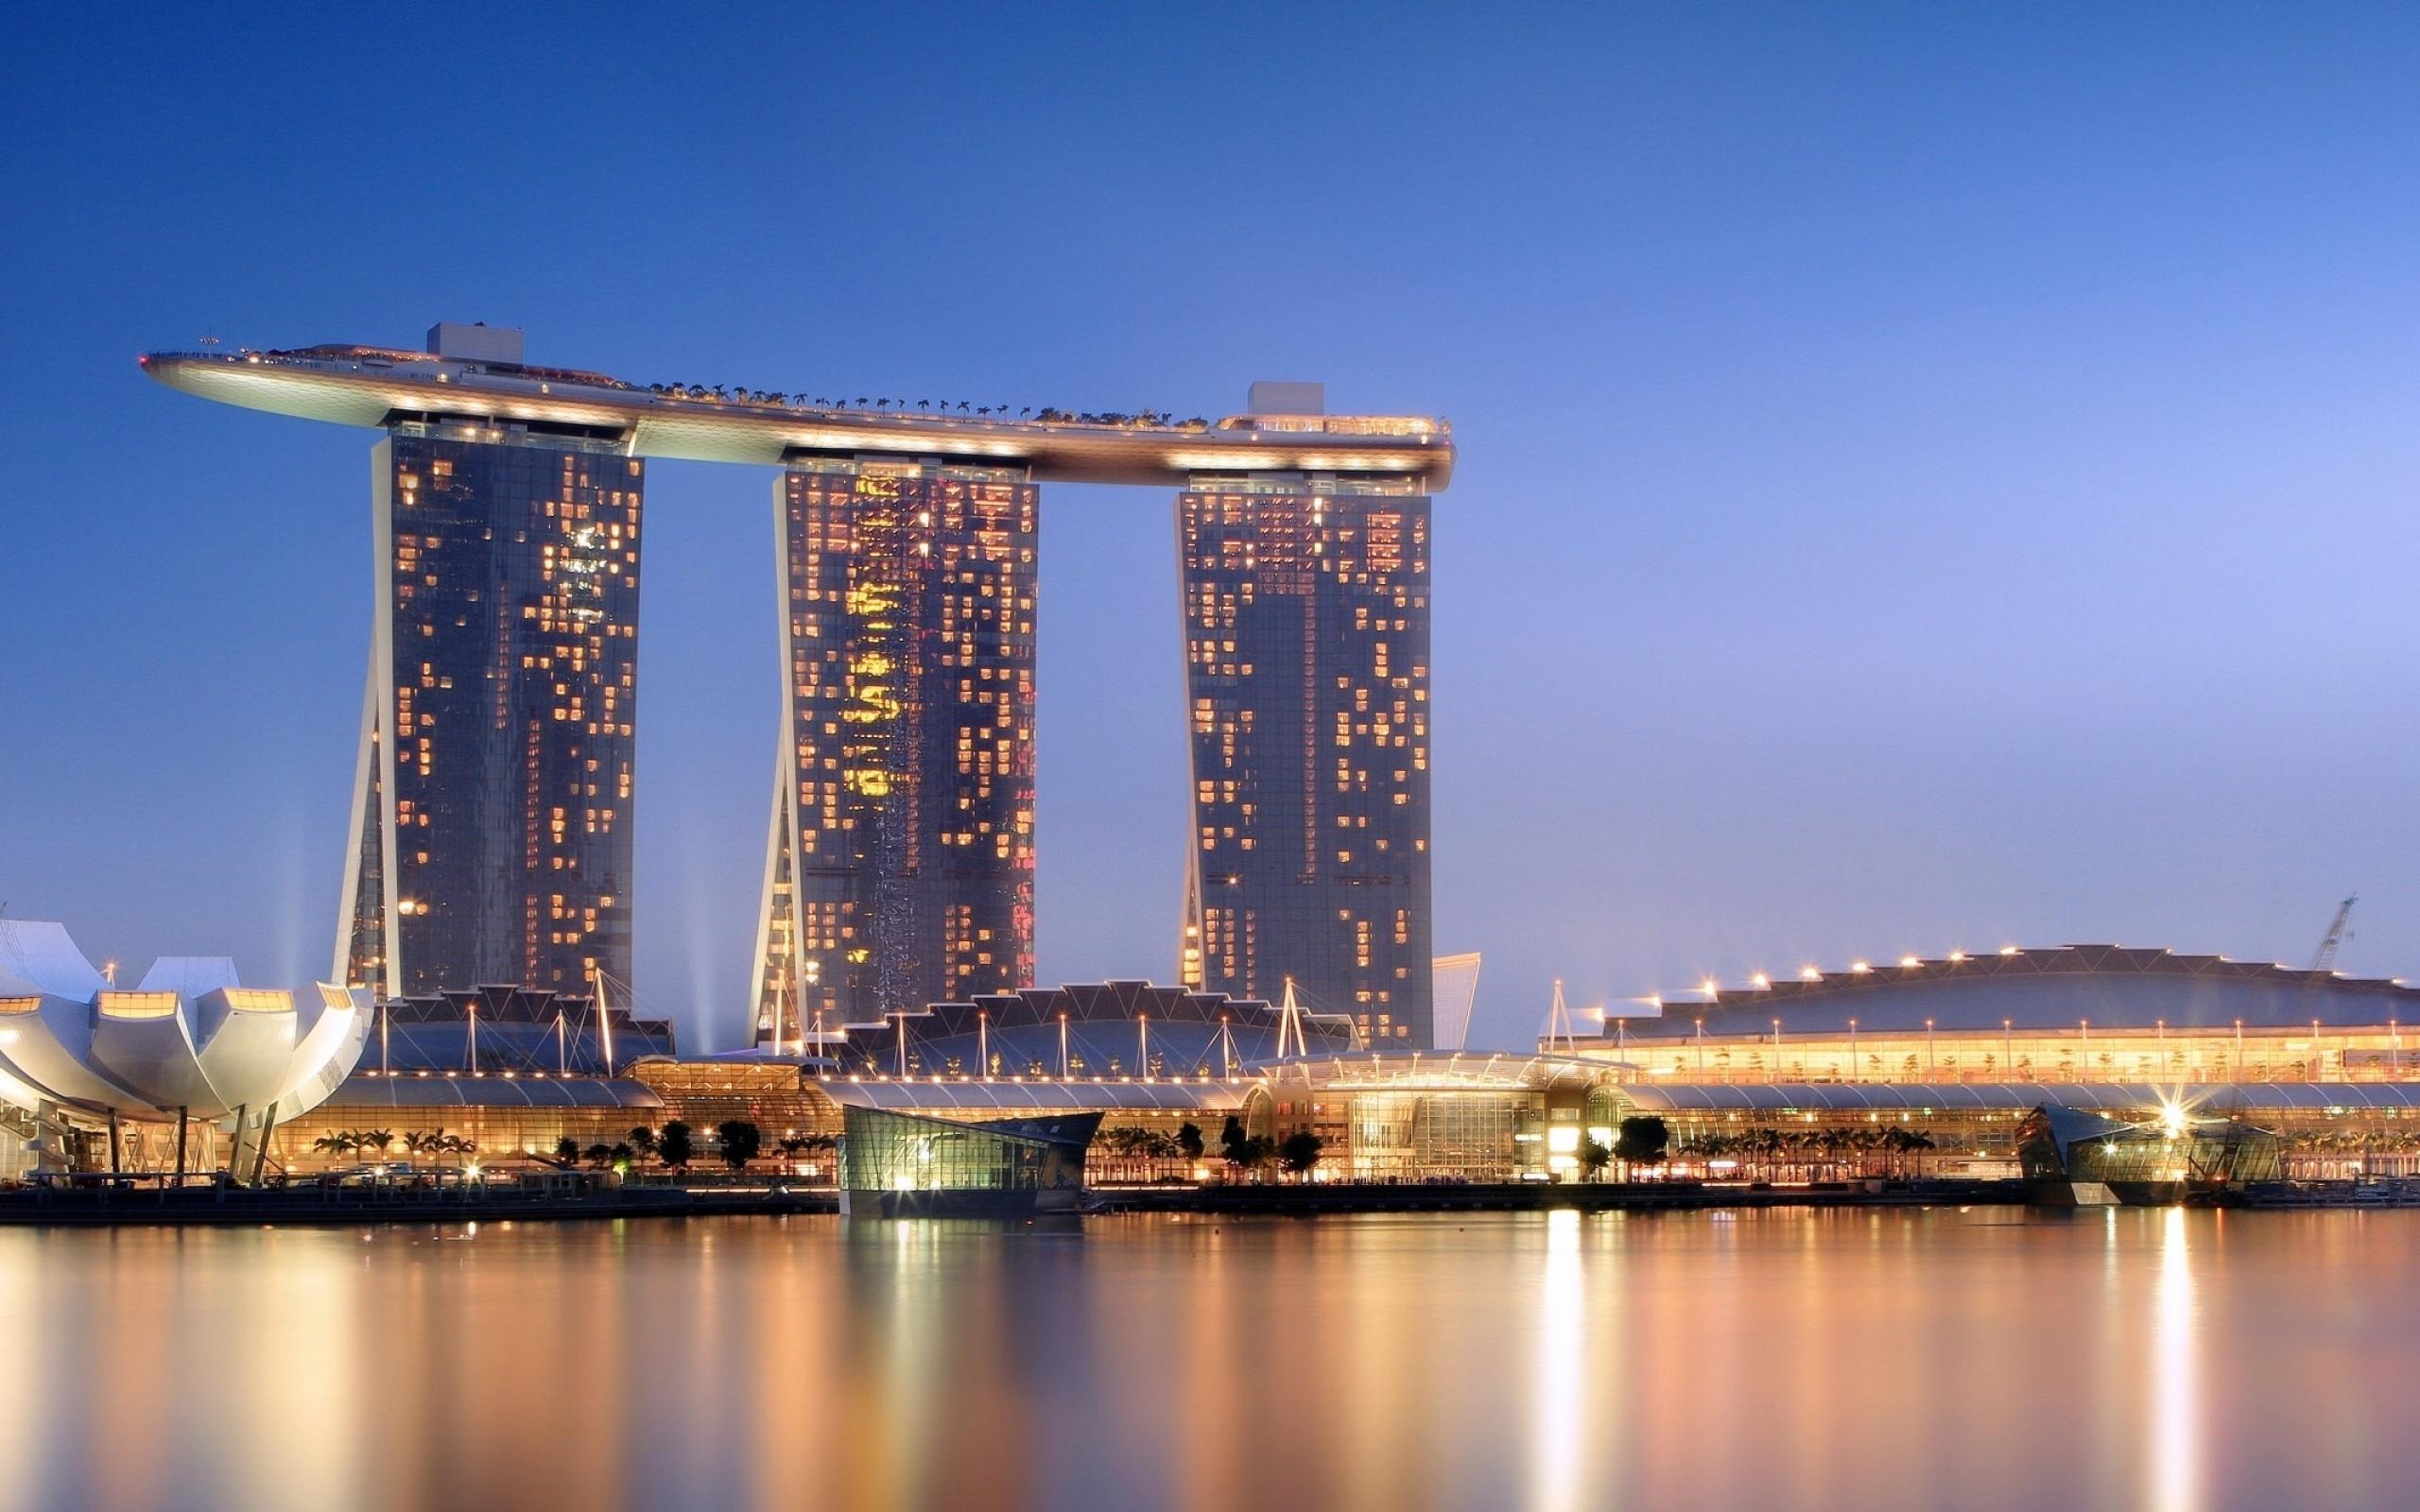 Singapore Hotel with Infinity Pool - Marina Bay Sands